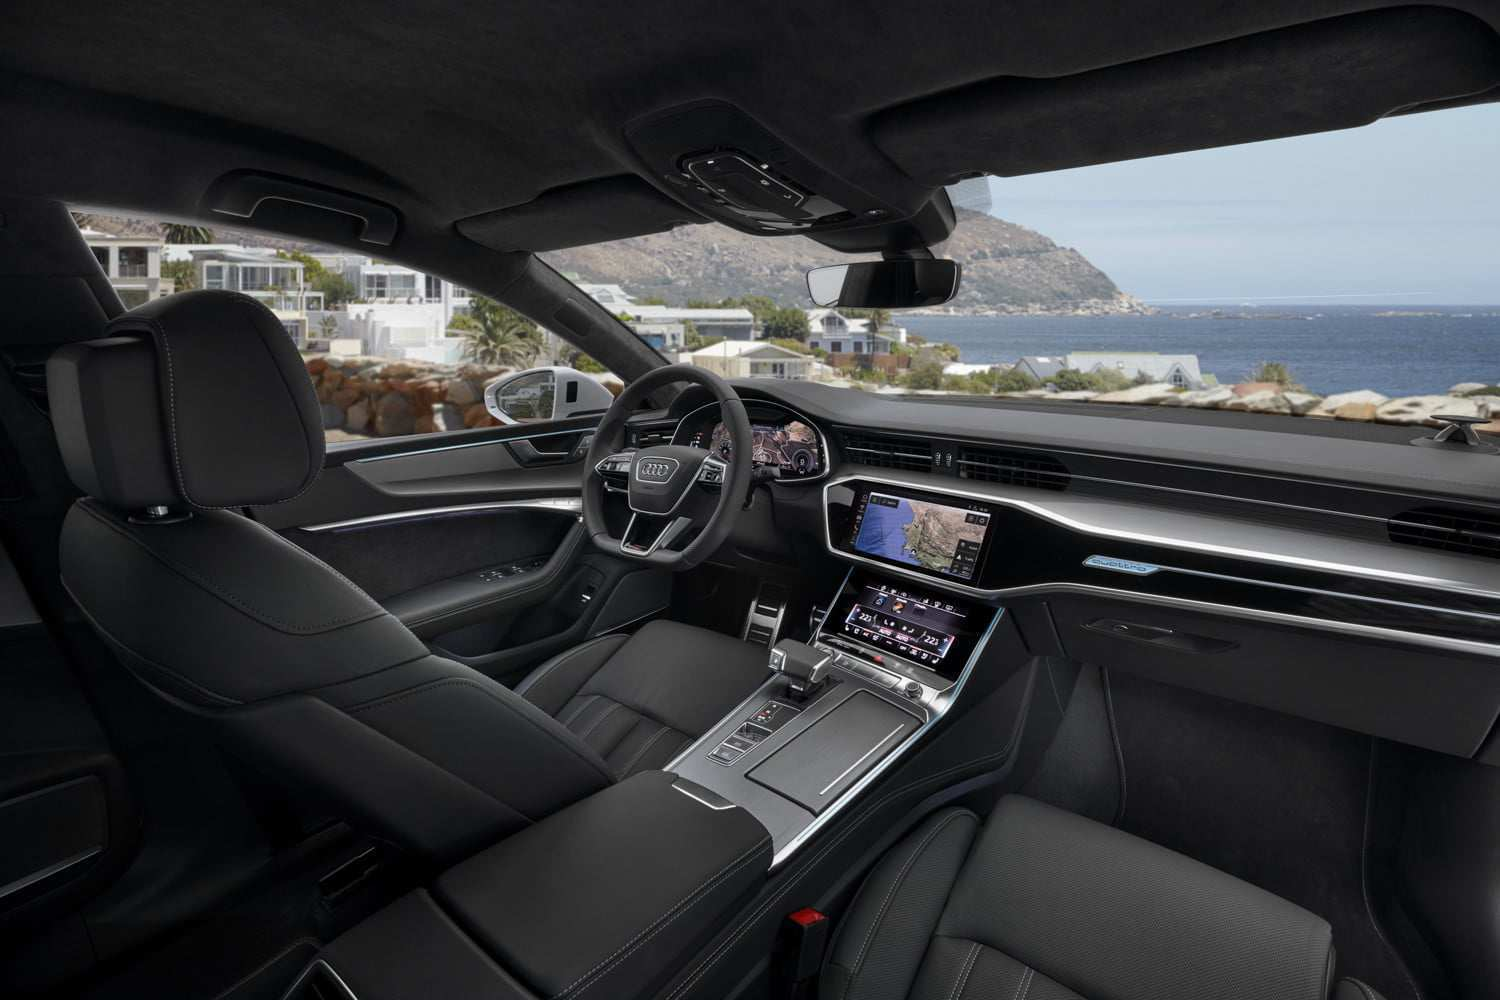 78 Gallery of 2019 Audi A7 Interior Specs and Review for 2019 Audi A7 Interior